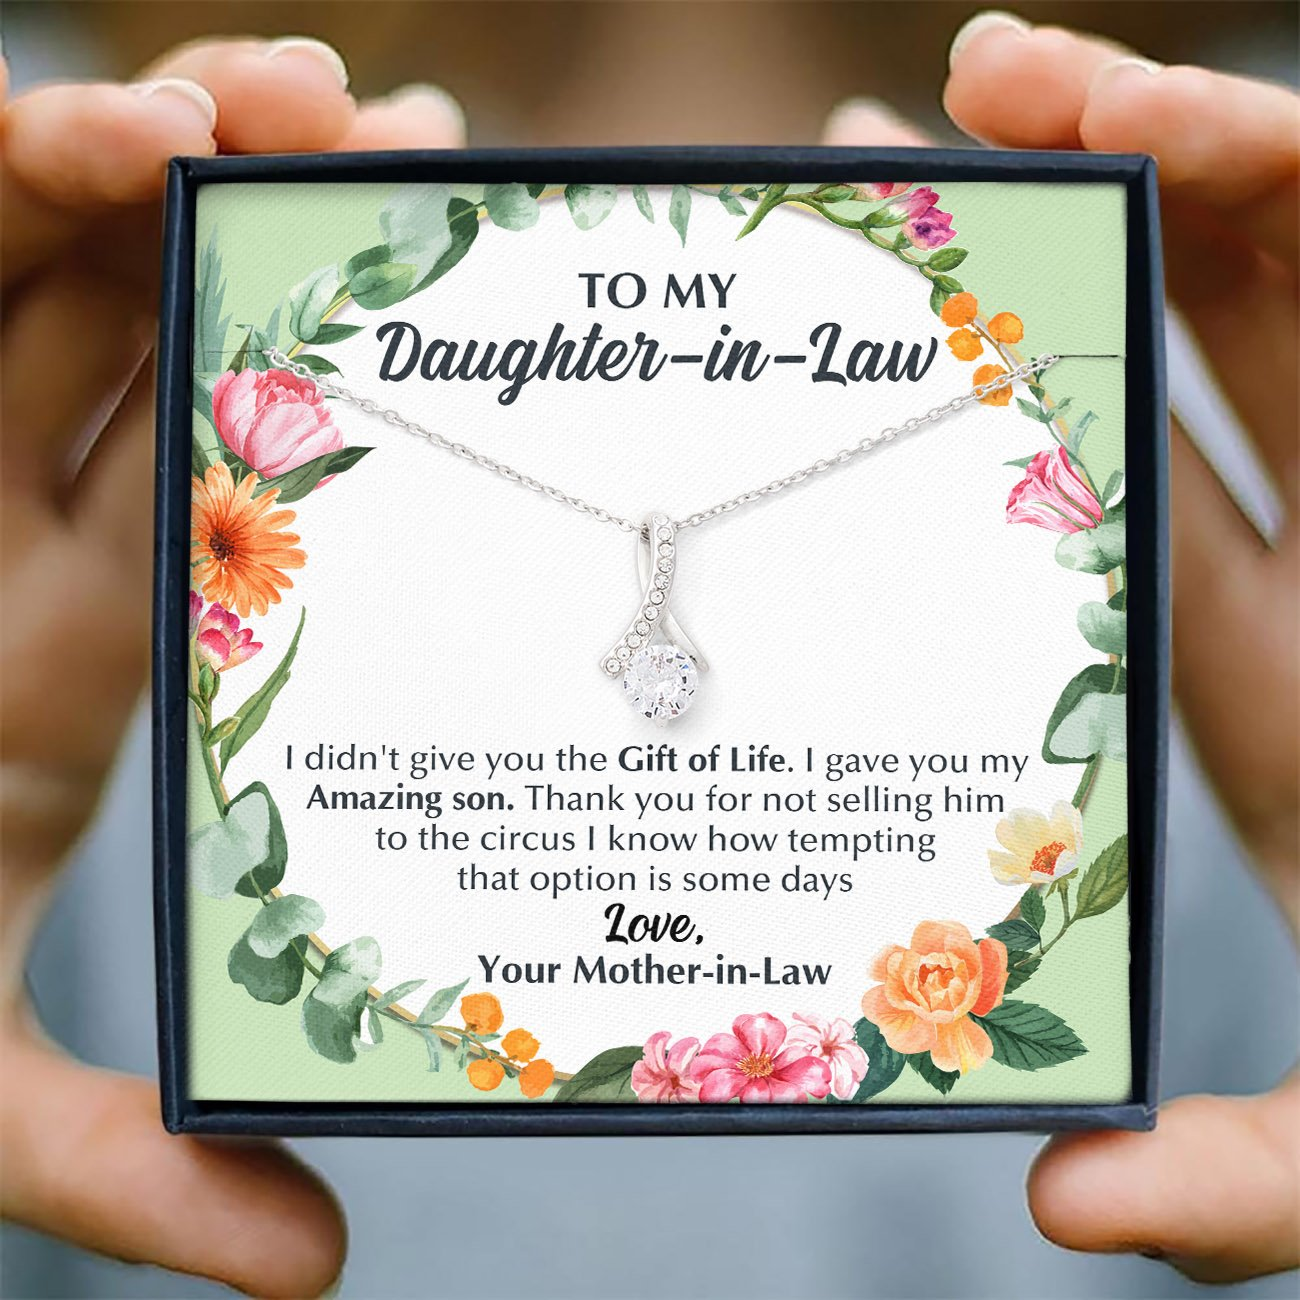 To My Daughter-In-Law - My Amazing Son